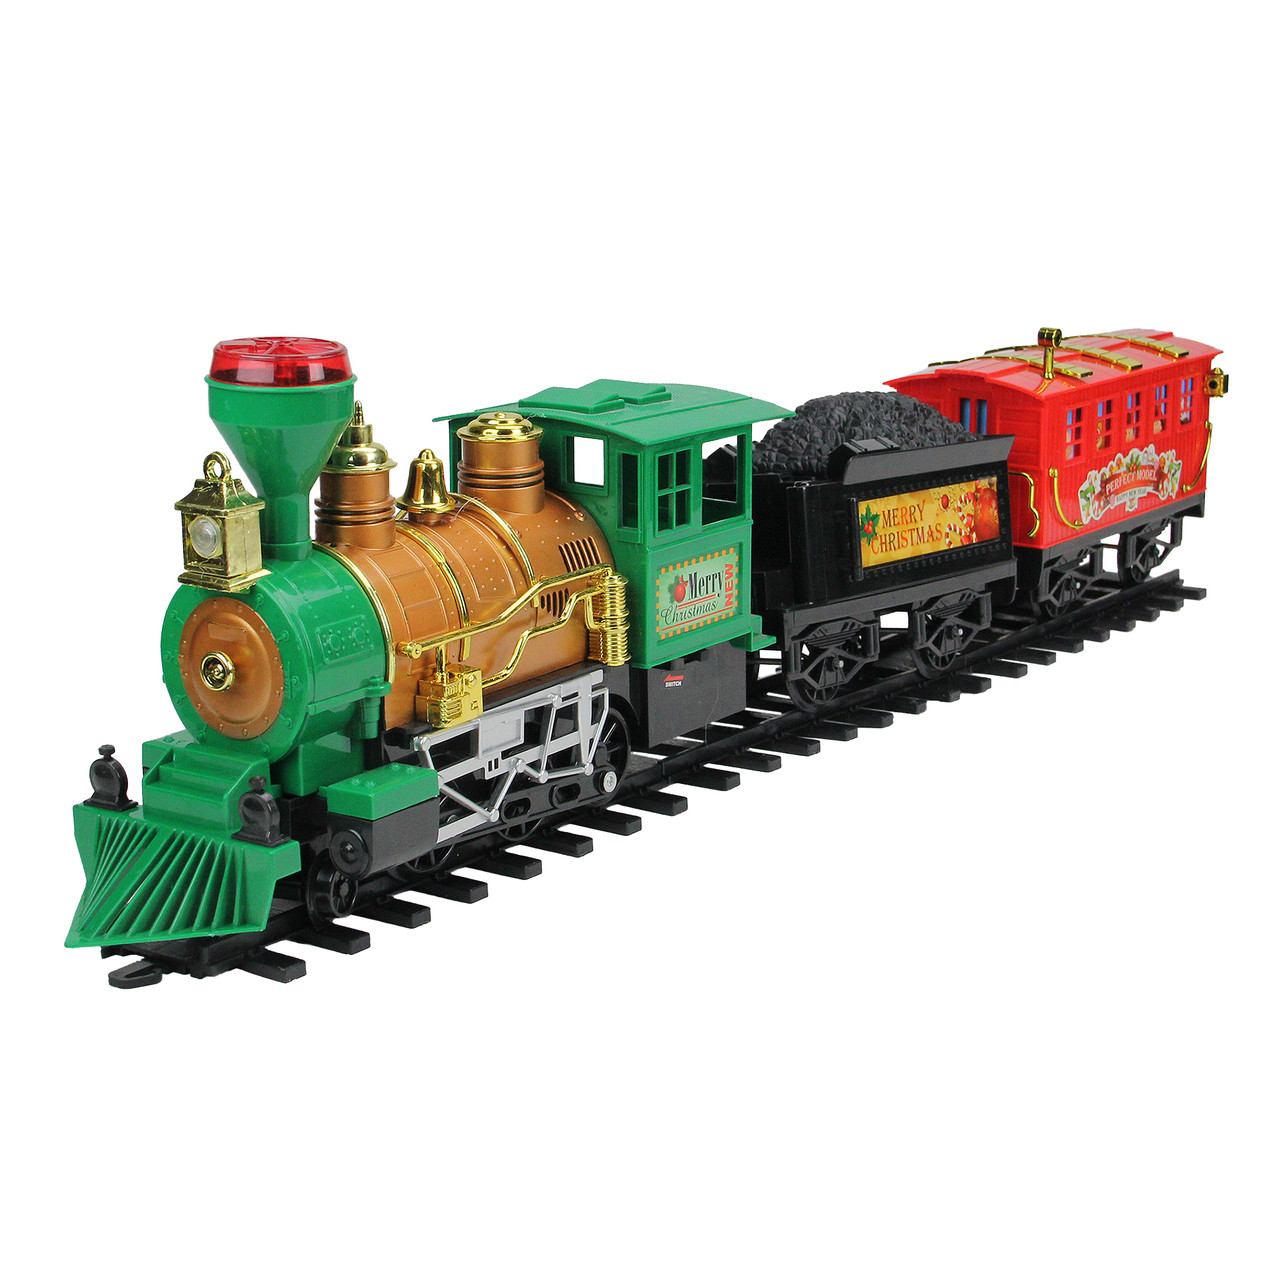 19-Piece Battery Operated Lighted & Animated Christmas Express Train Set  with Sound - 31758637